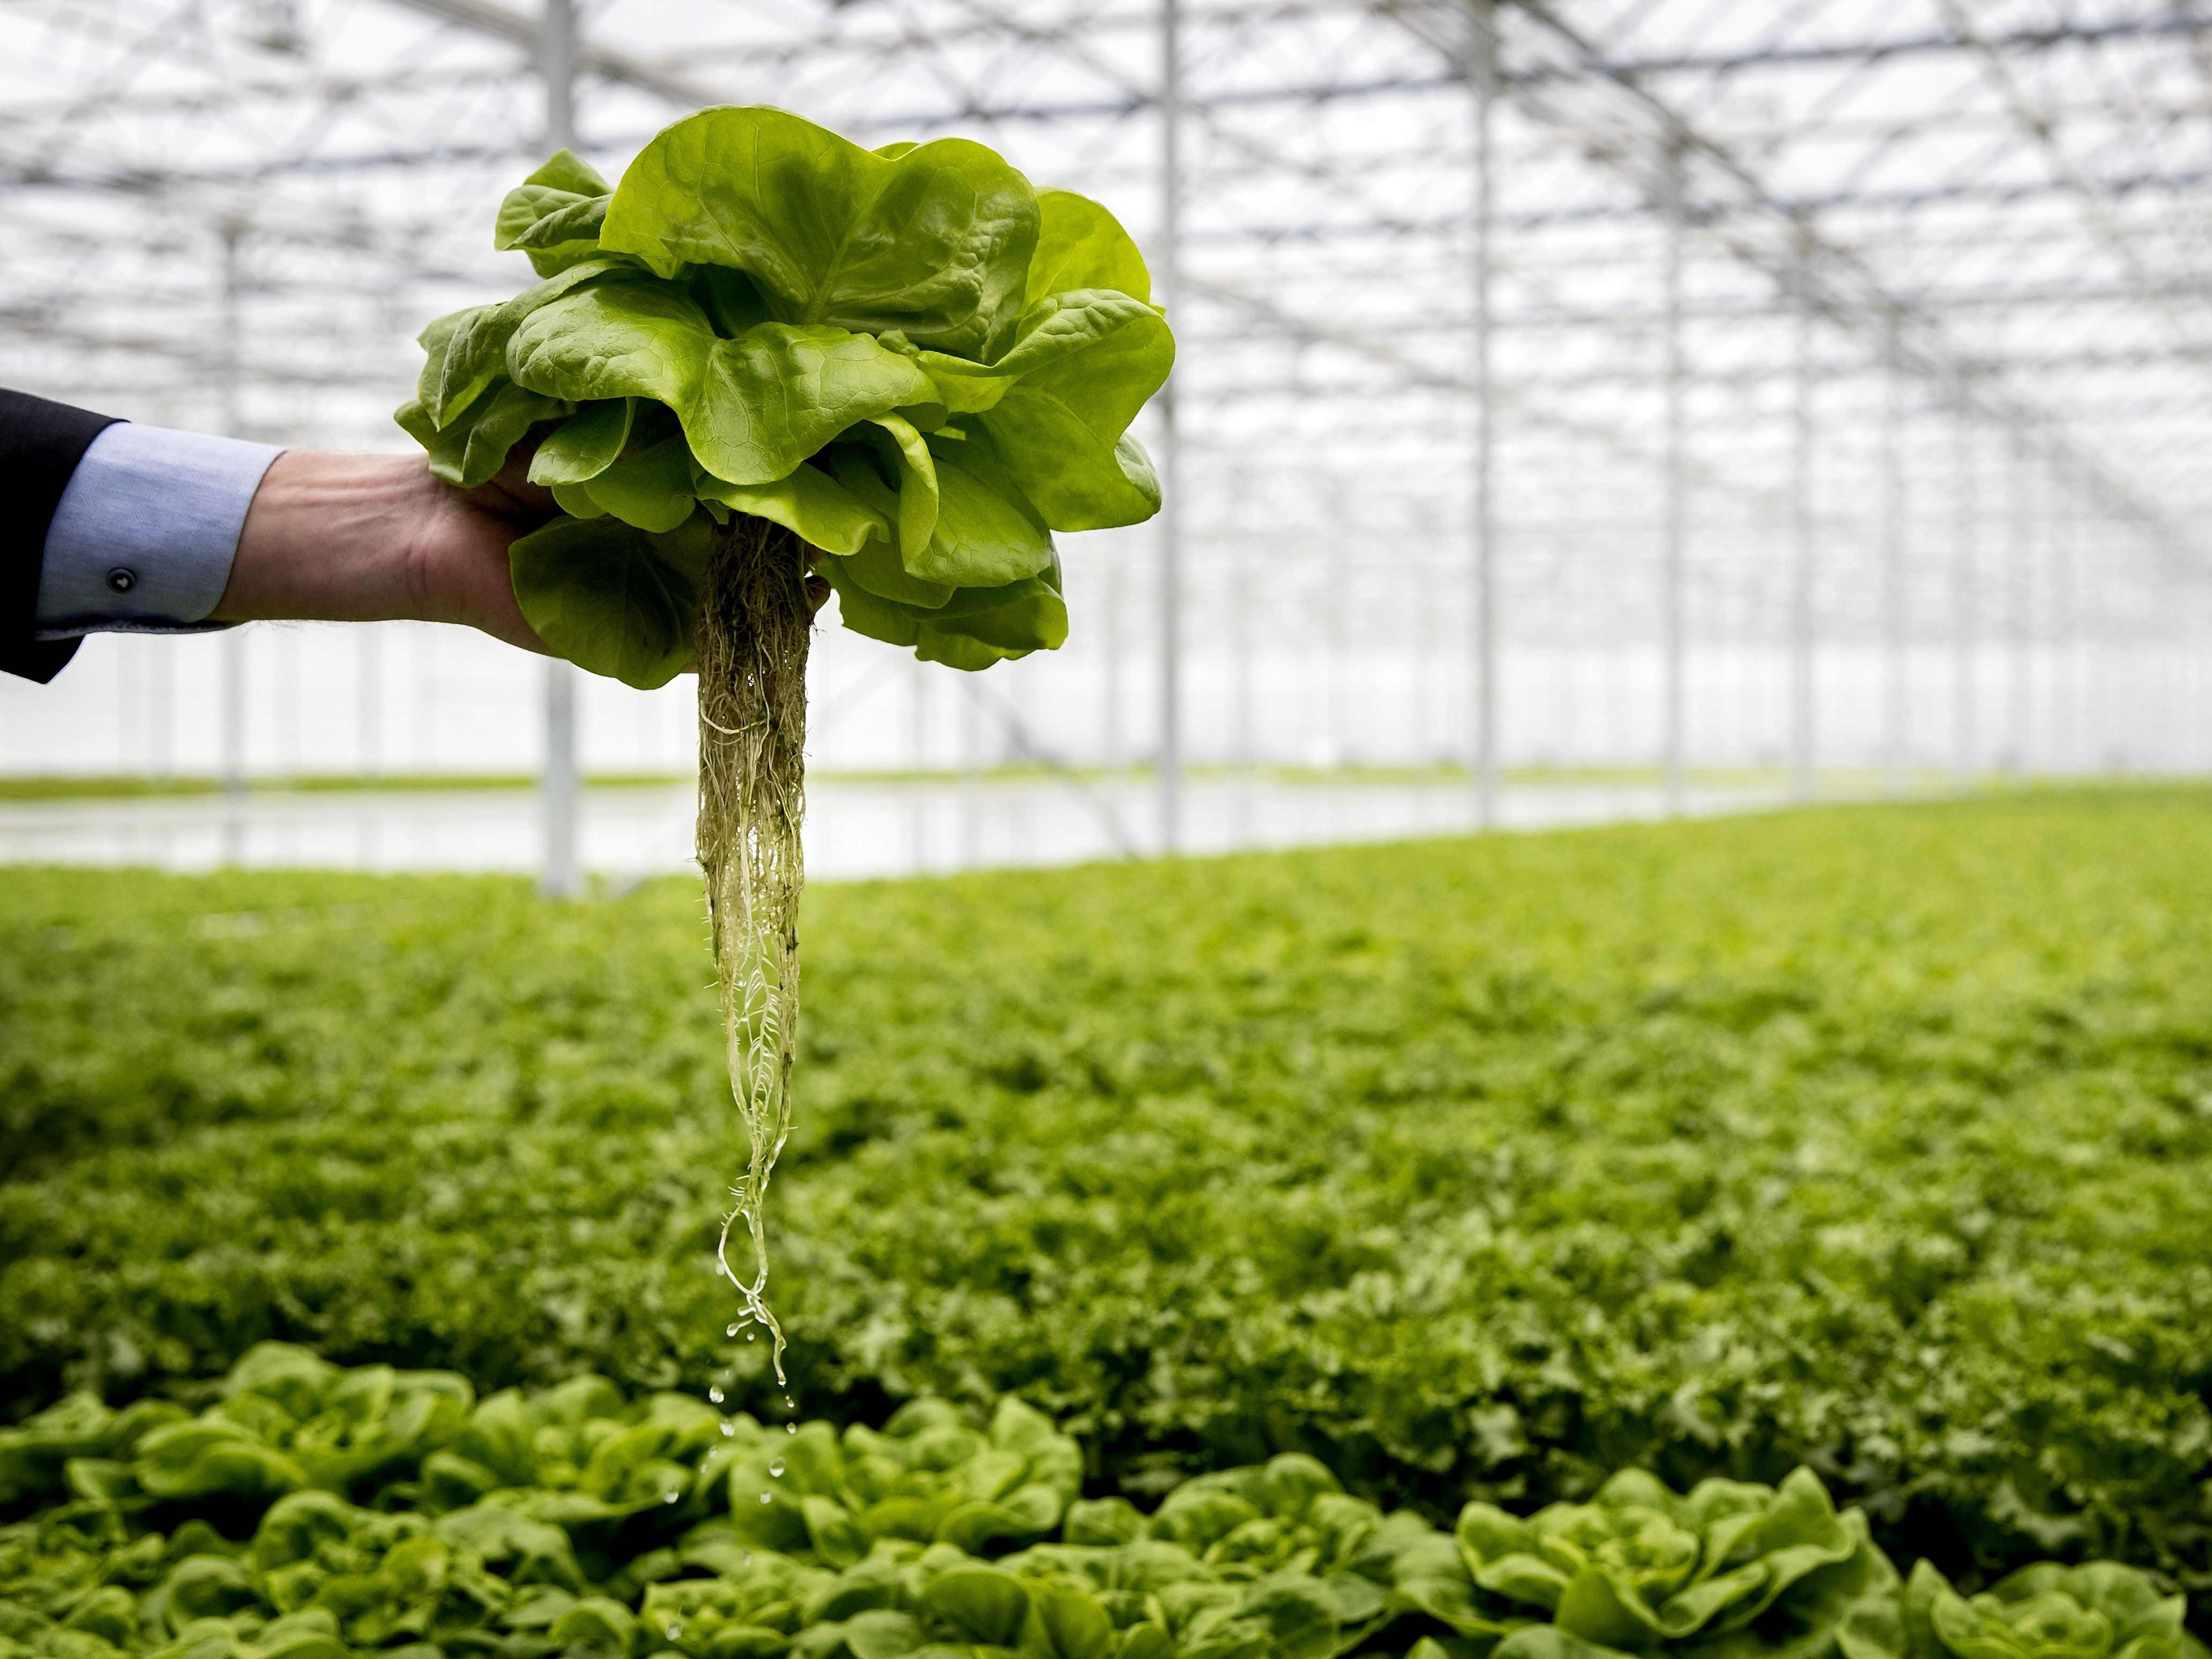 This is the first official harvest of hydroponic lettuce at a greenhouse in Warmenhuizen, in northeastern Netherlands, on January 31, 2019. It is a new sustainable way of lettuce cultivation in which the roots of the plant, which hangs above the water, extract the nutrients from the water.